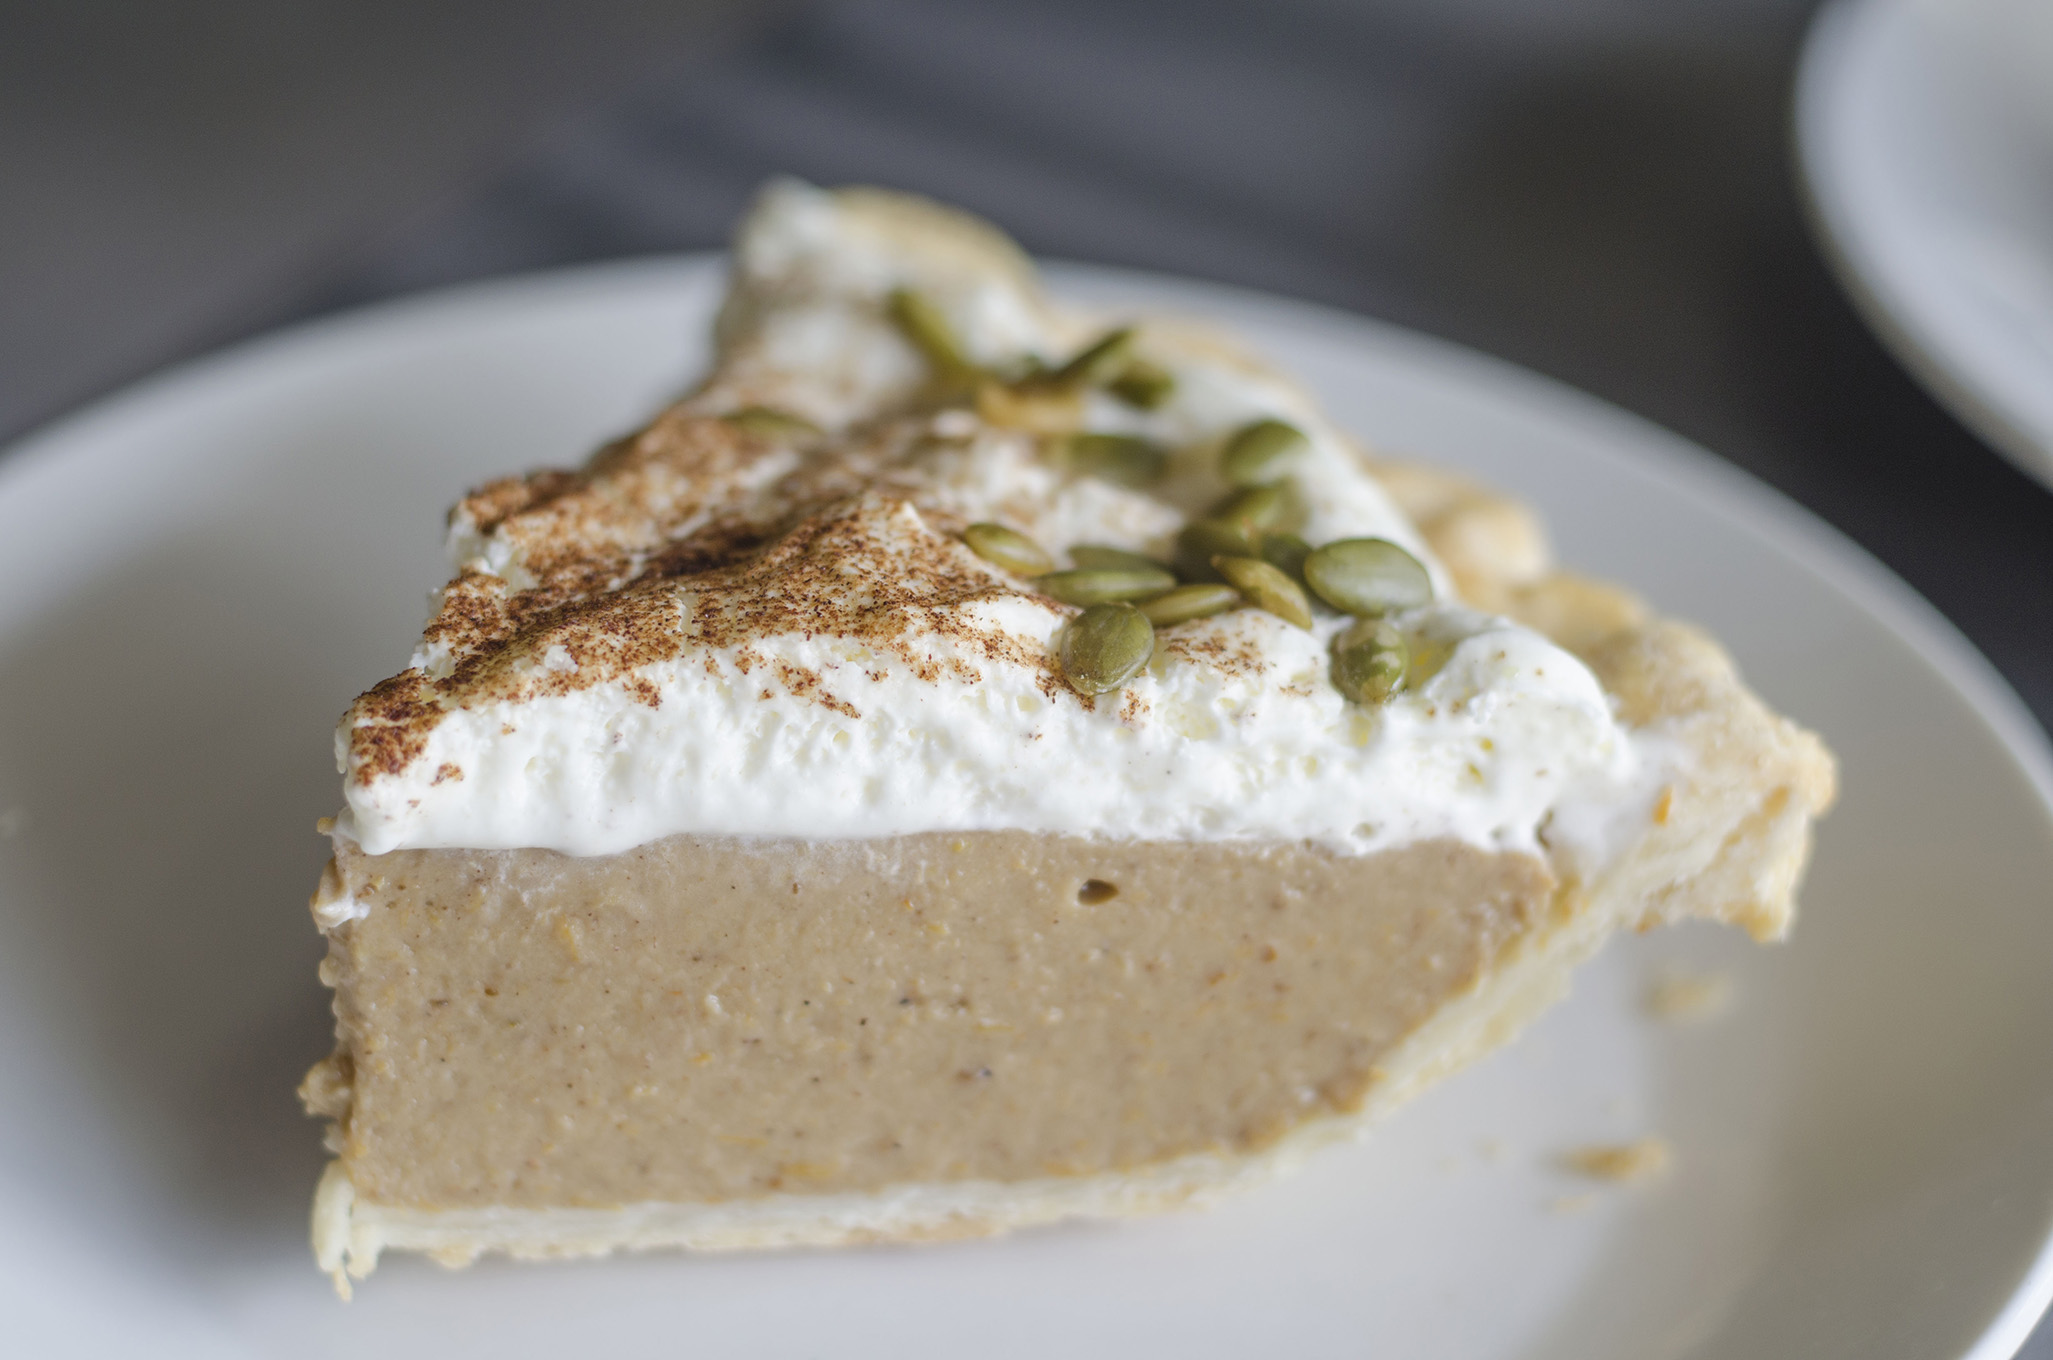 The Pumpkin Spice Latte Pie from Riverside Pie Cafe in Windsor, Ontario.